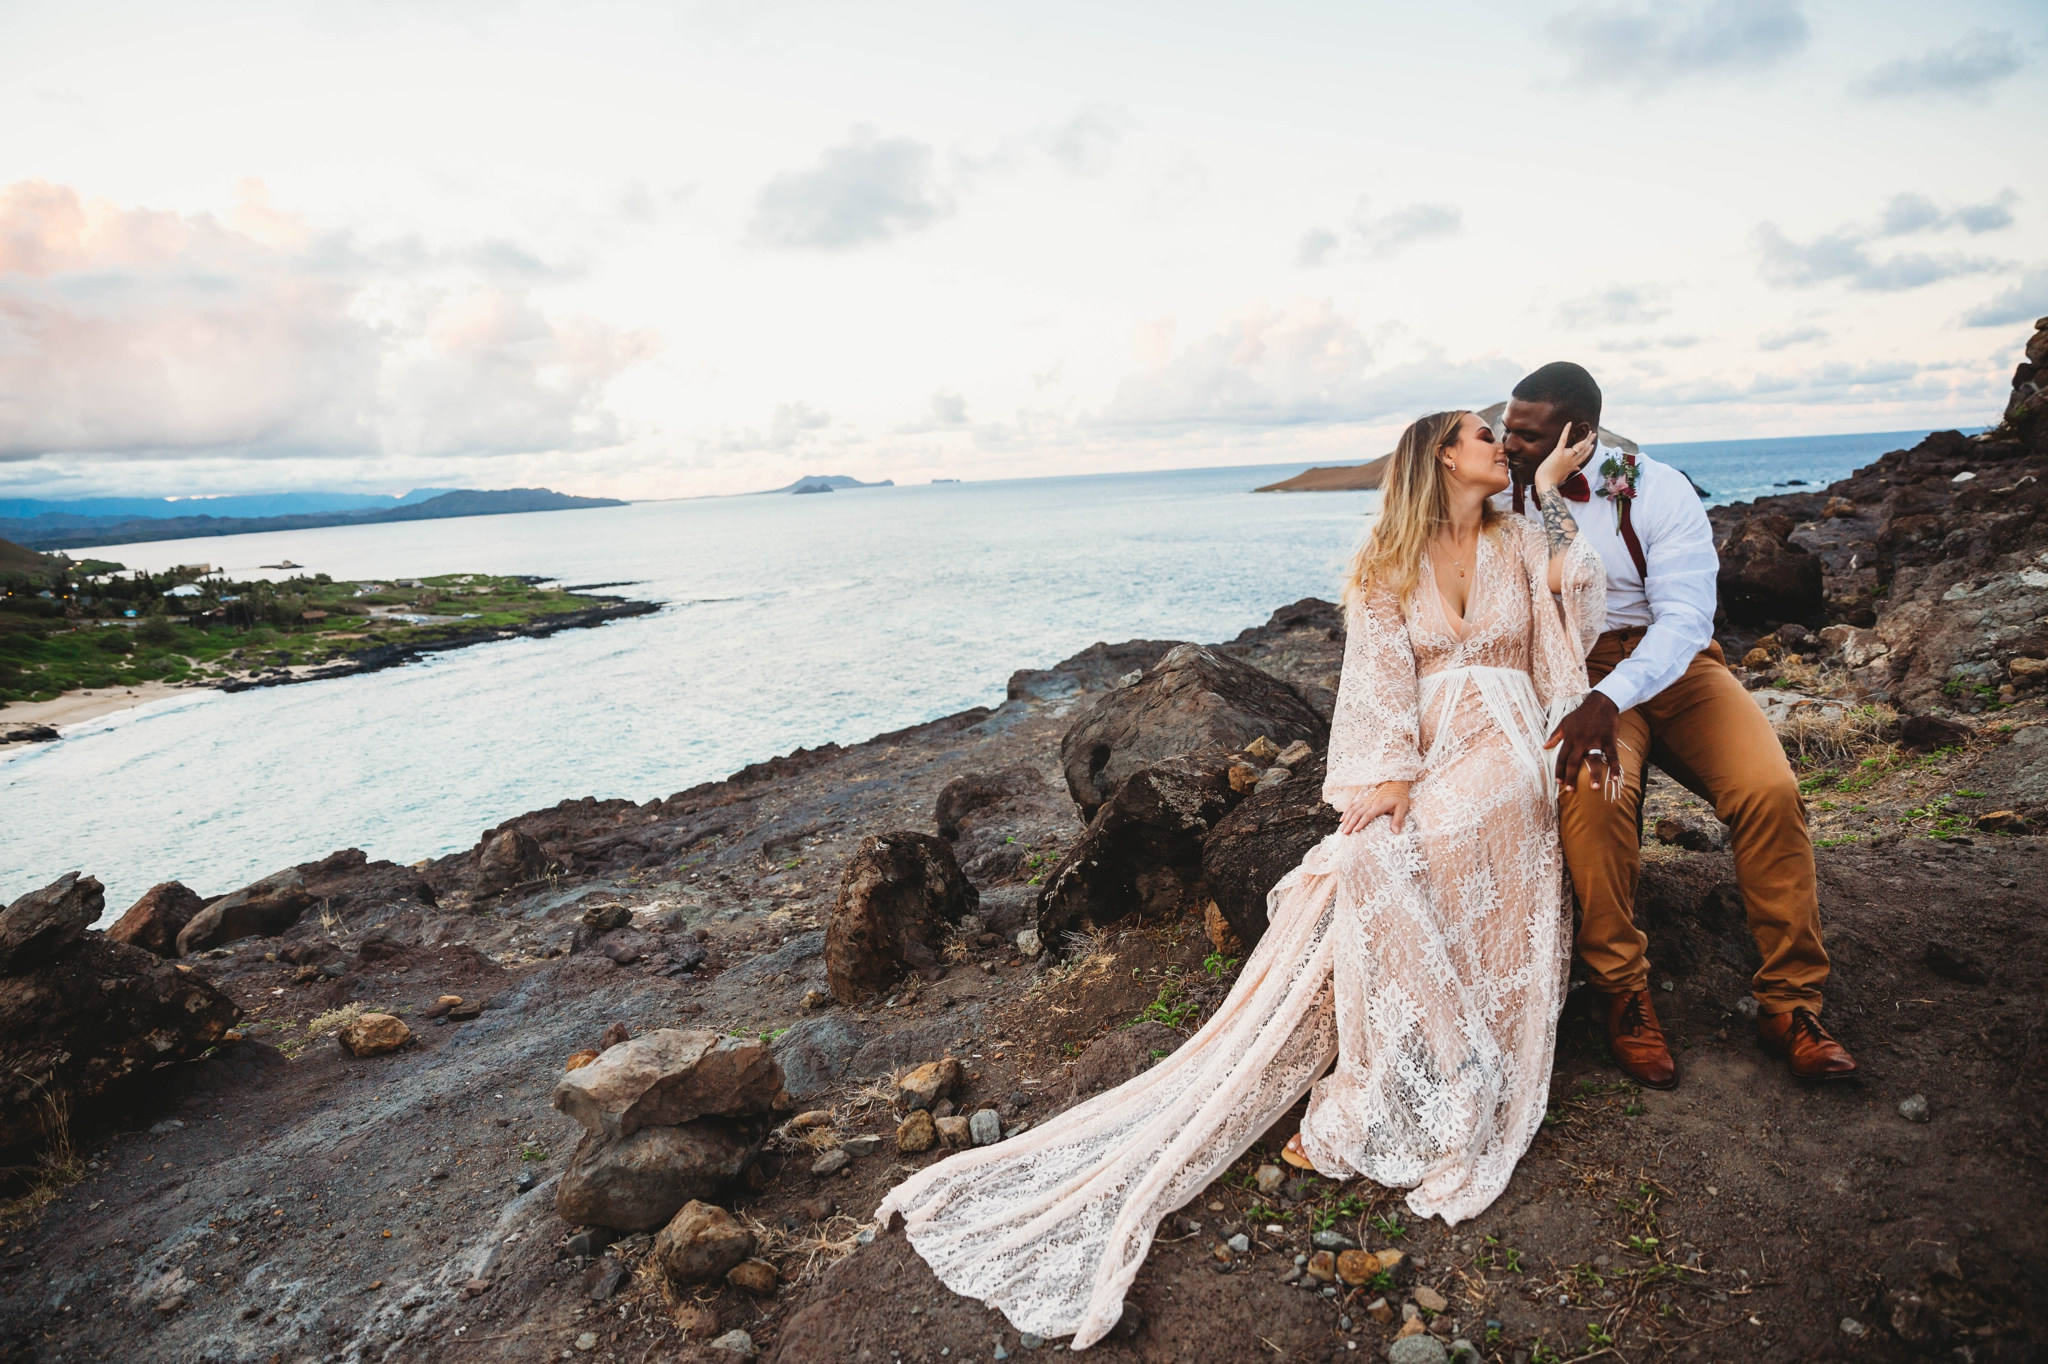 couple kissing on the cliffs above Makapuu Beach at the Lookout, Waimanalo, HI - Oahu Hawaii Engagement Photographer - Bride in a flowy fringe boho wedding dress - lanikai lookout - deutsche hochzeits fotografin in hawaii - smal1 - dark and moody - true to live